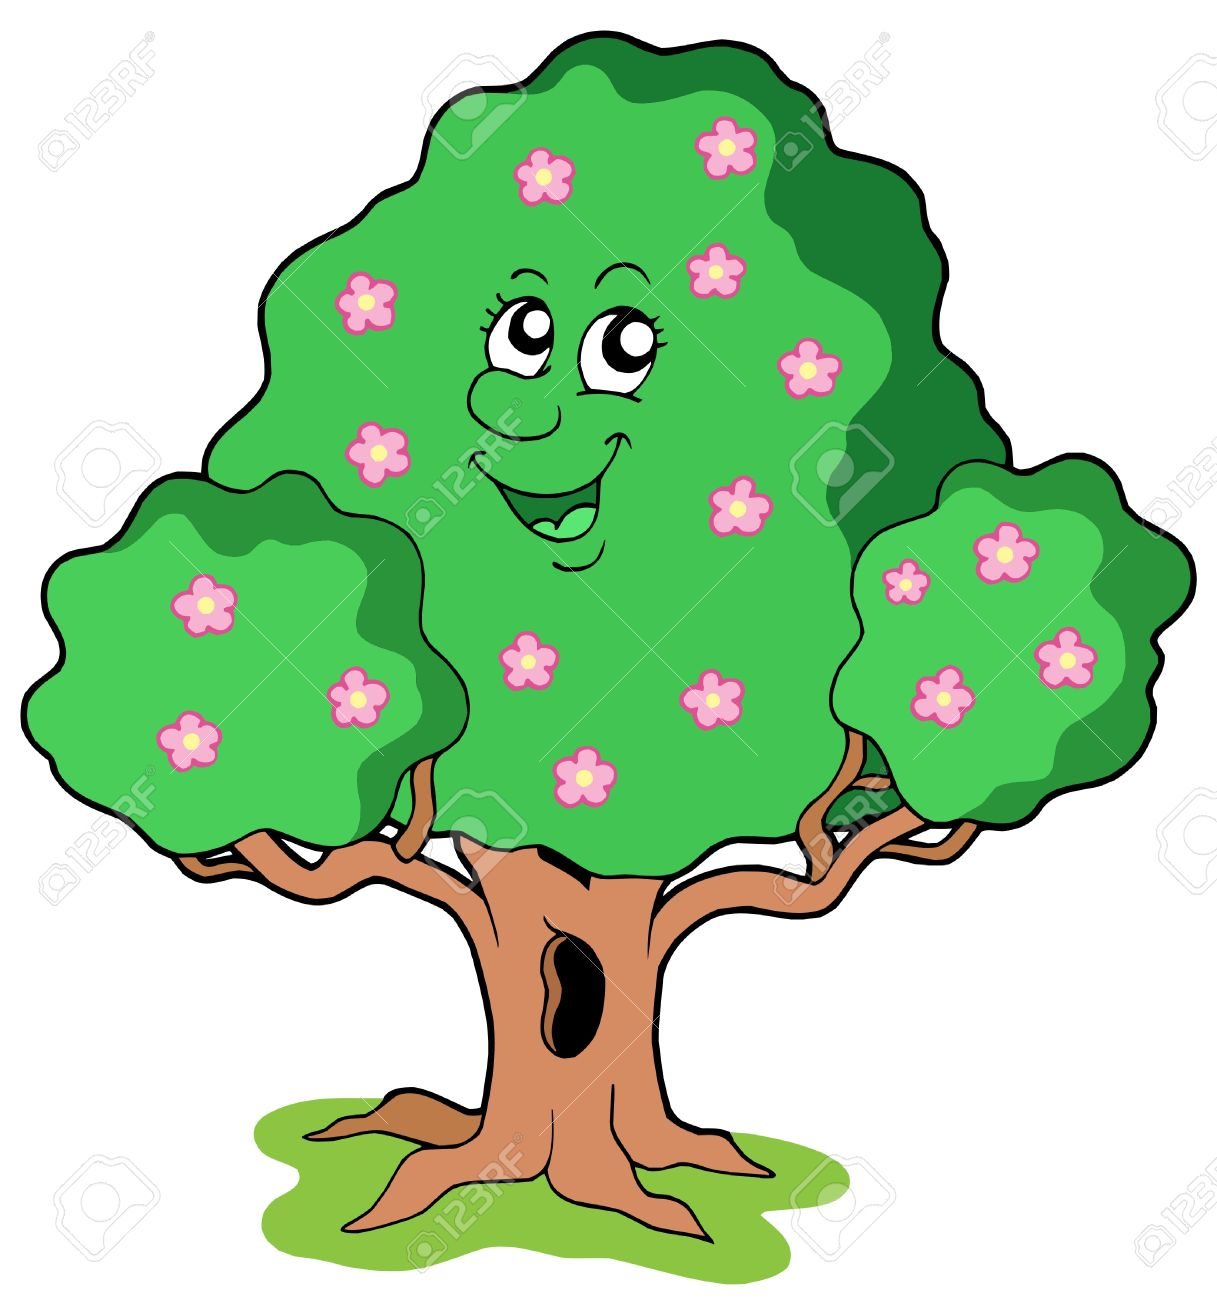 Smiling tree clipart.